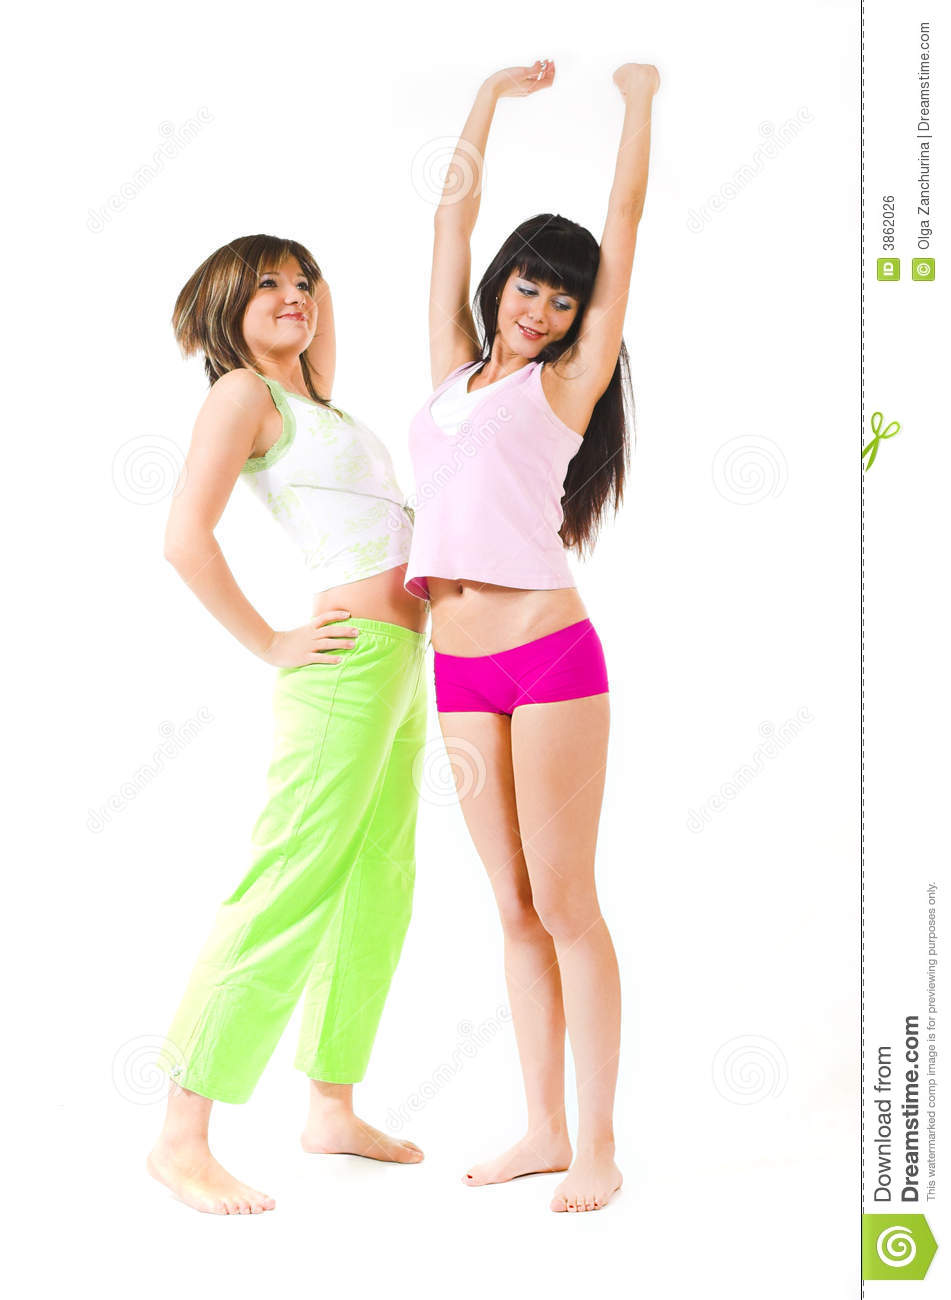 Two Girls In Underwear Royalty Free Stock Image - Image: 3862026